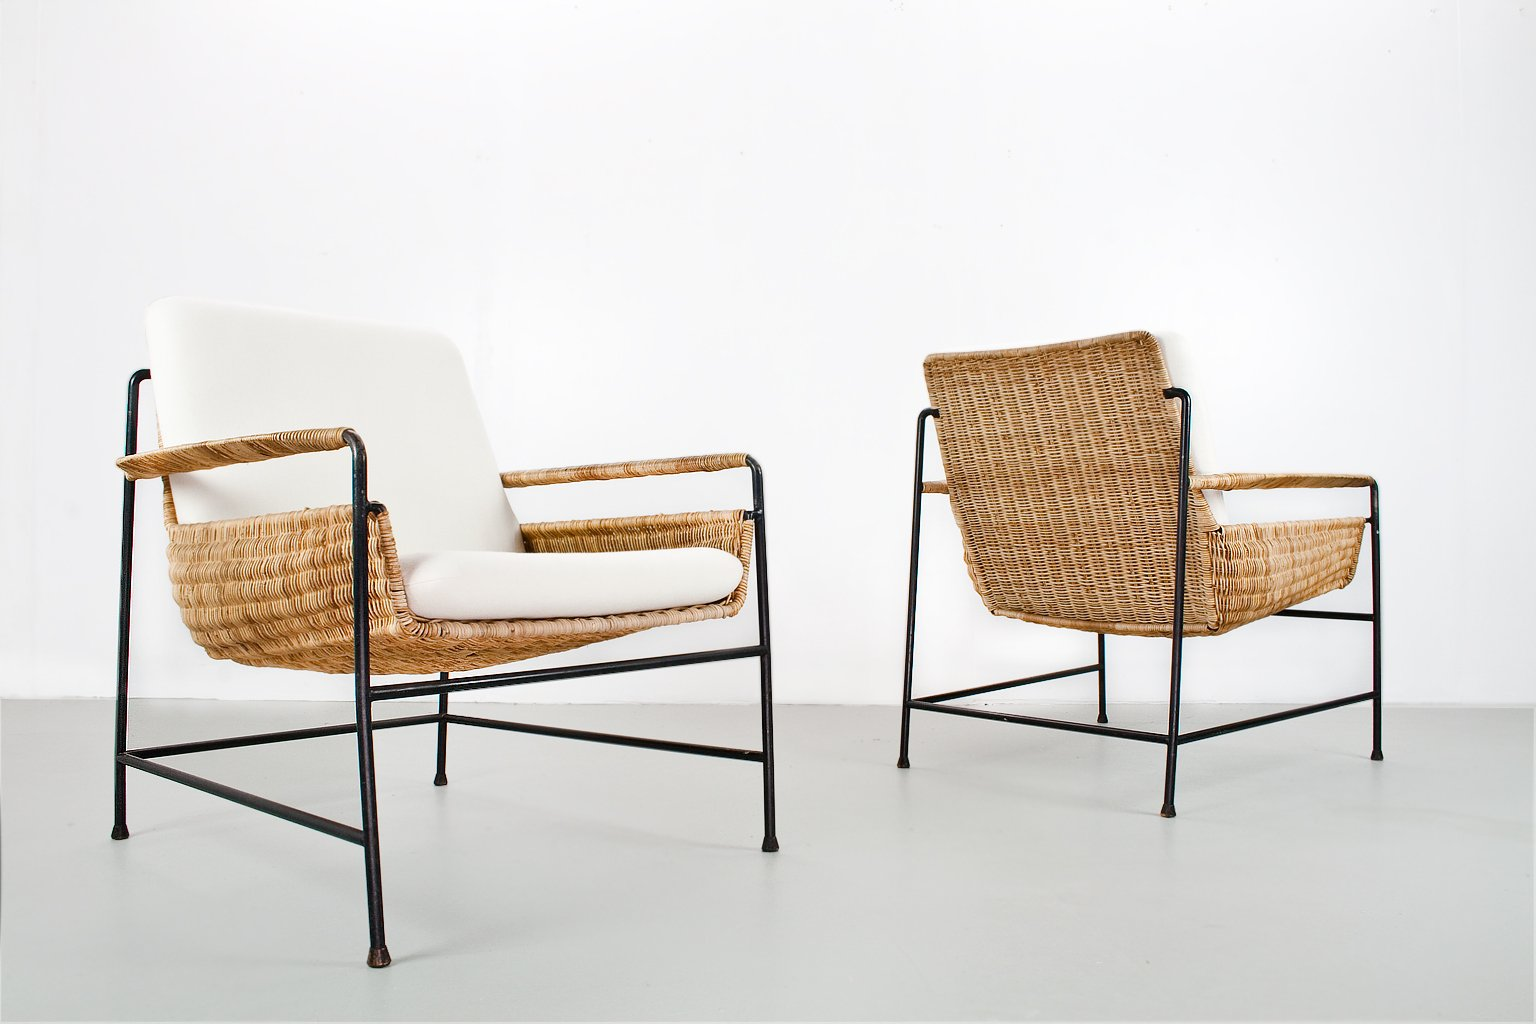 rattan lounge chairs by herta maria witzemann for wilde spieth 1950s set of 2 for sale at pamono. Black Bedroom Furniture Sets. Home Design Ideas